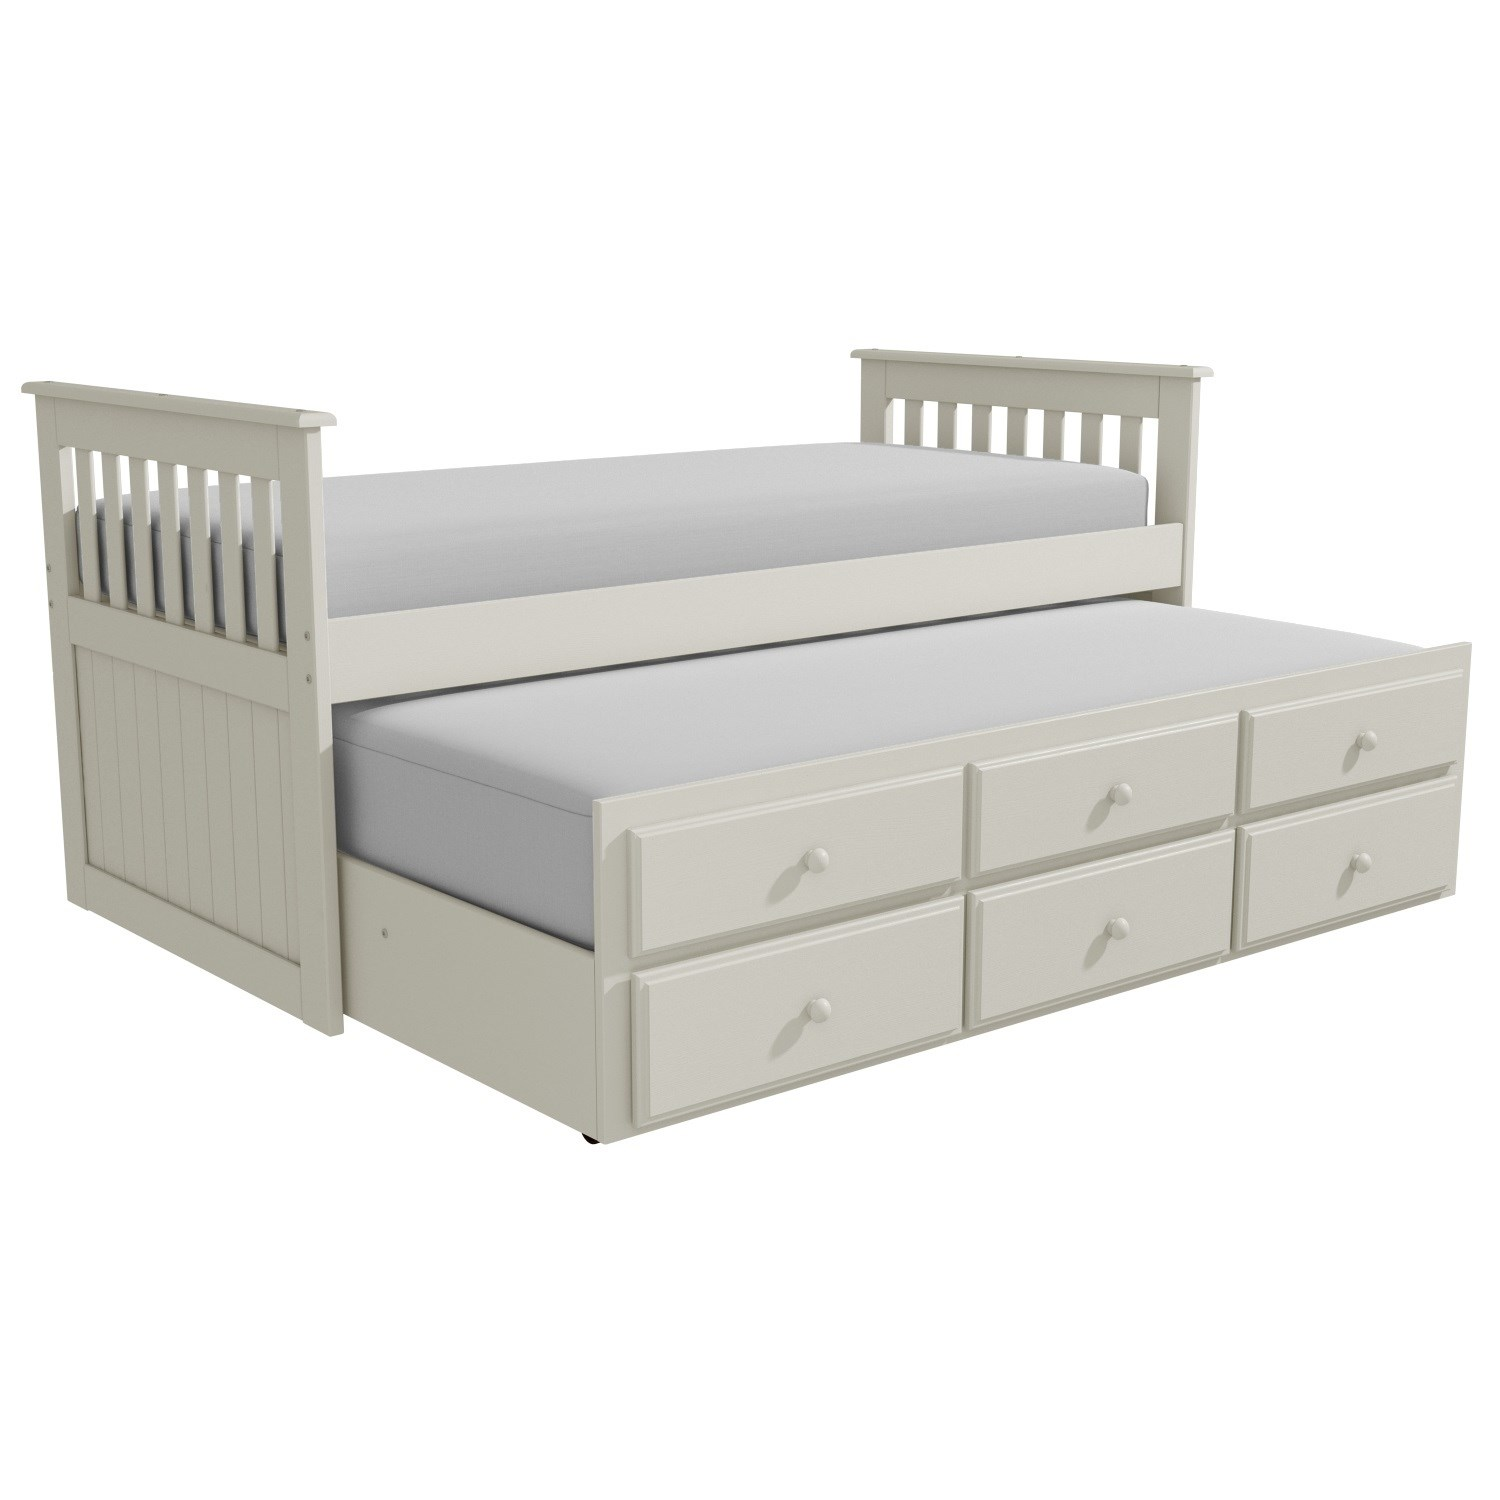 Accessories choose an option under bed drawers trundle bed none - Cream Guest Bed Captains Bed Trundle Bed 3 Storage Drawers